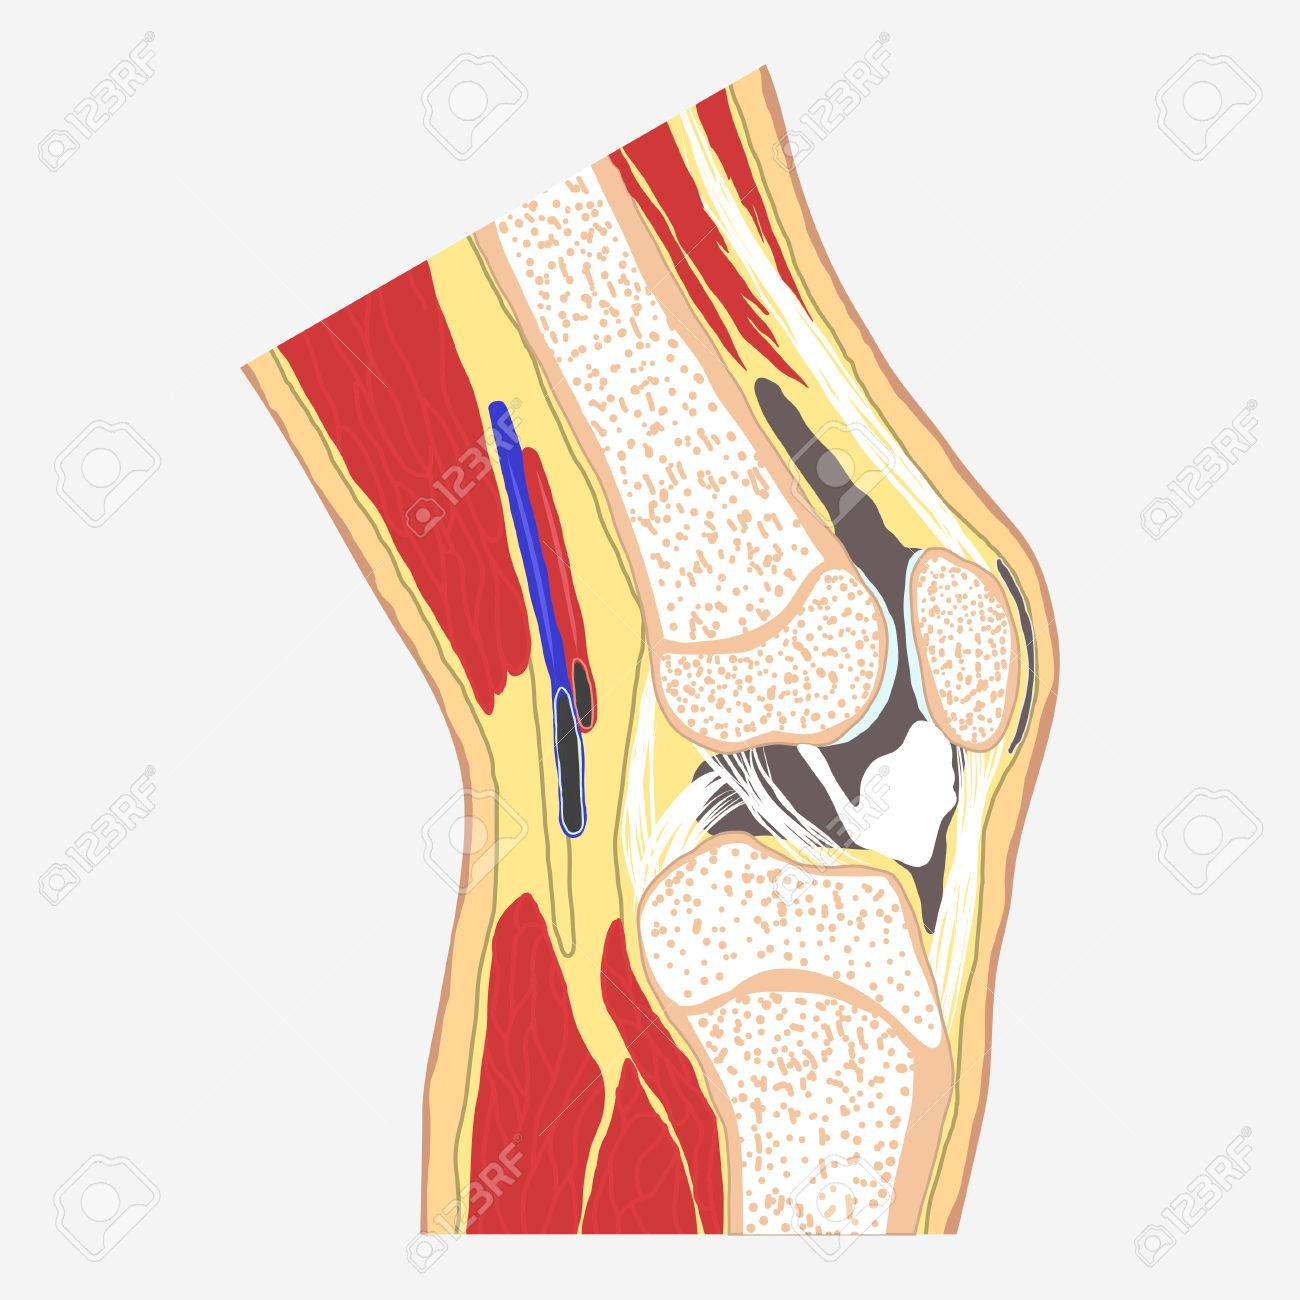 Human Knee Joint, Medical Body Anatomy, Orthopedic Clinic, Leg ...